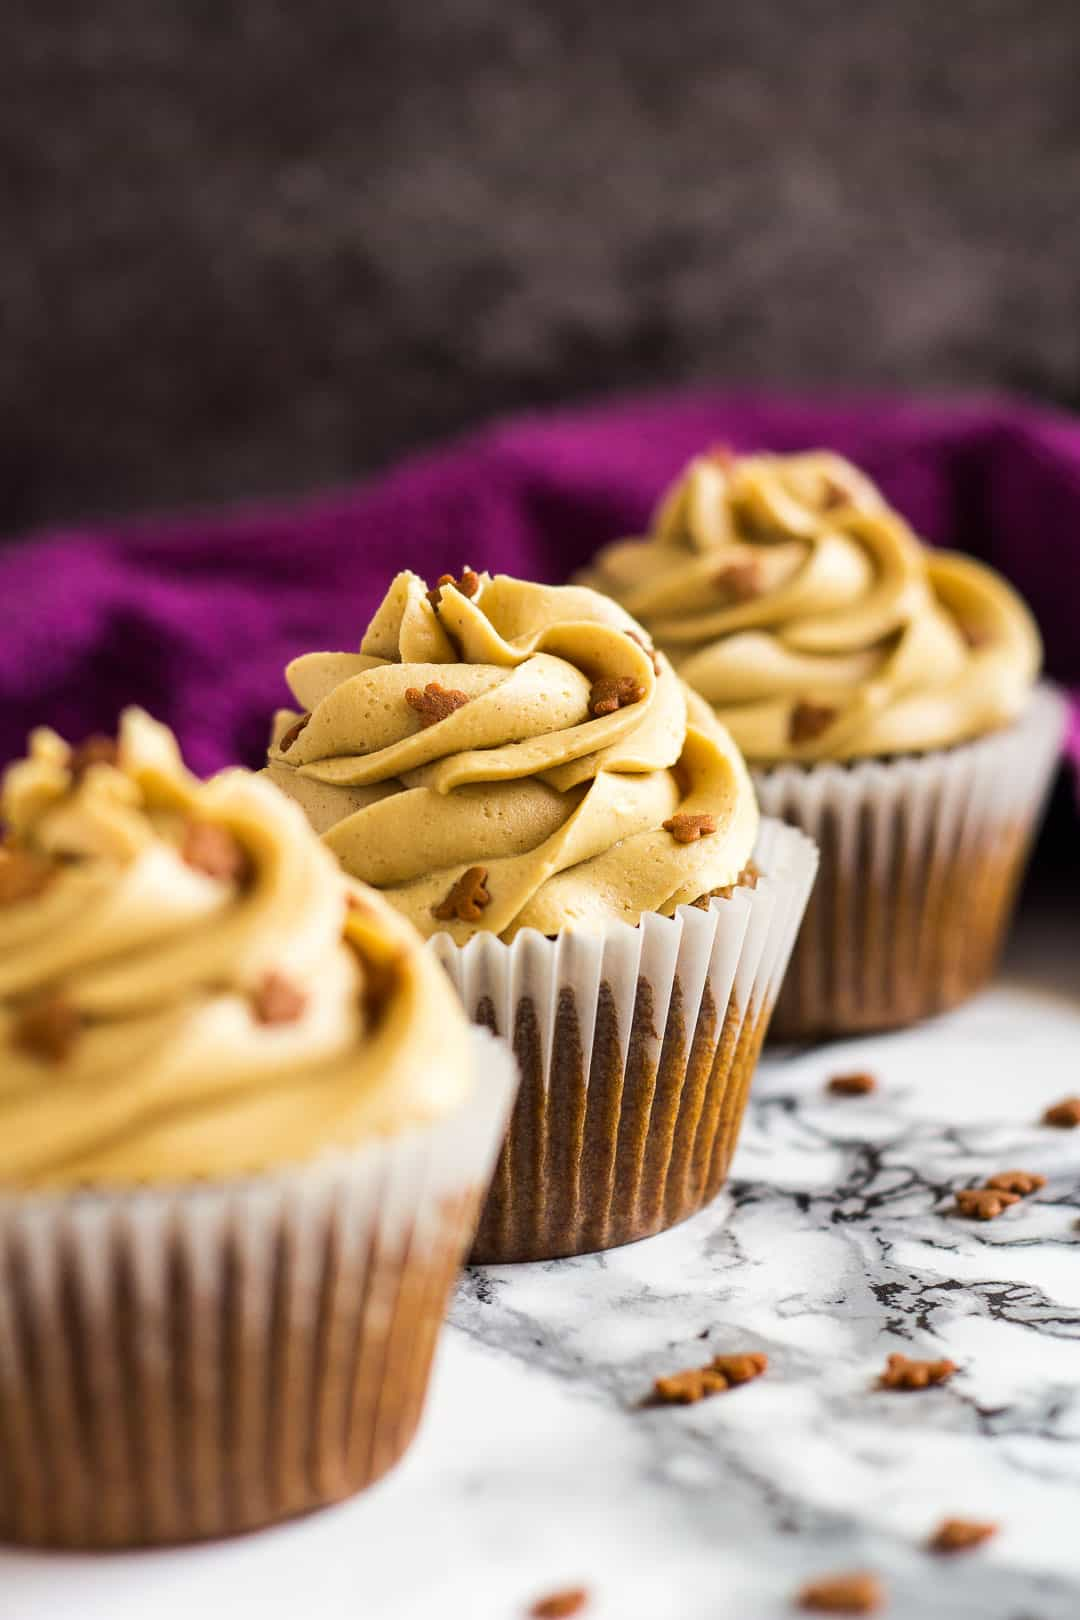 A row of three frosted gingerbread cupcakes.